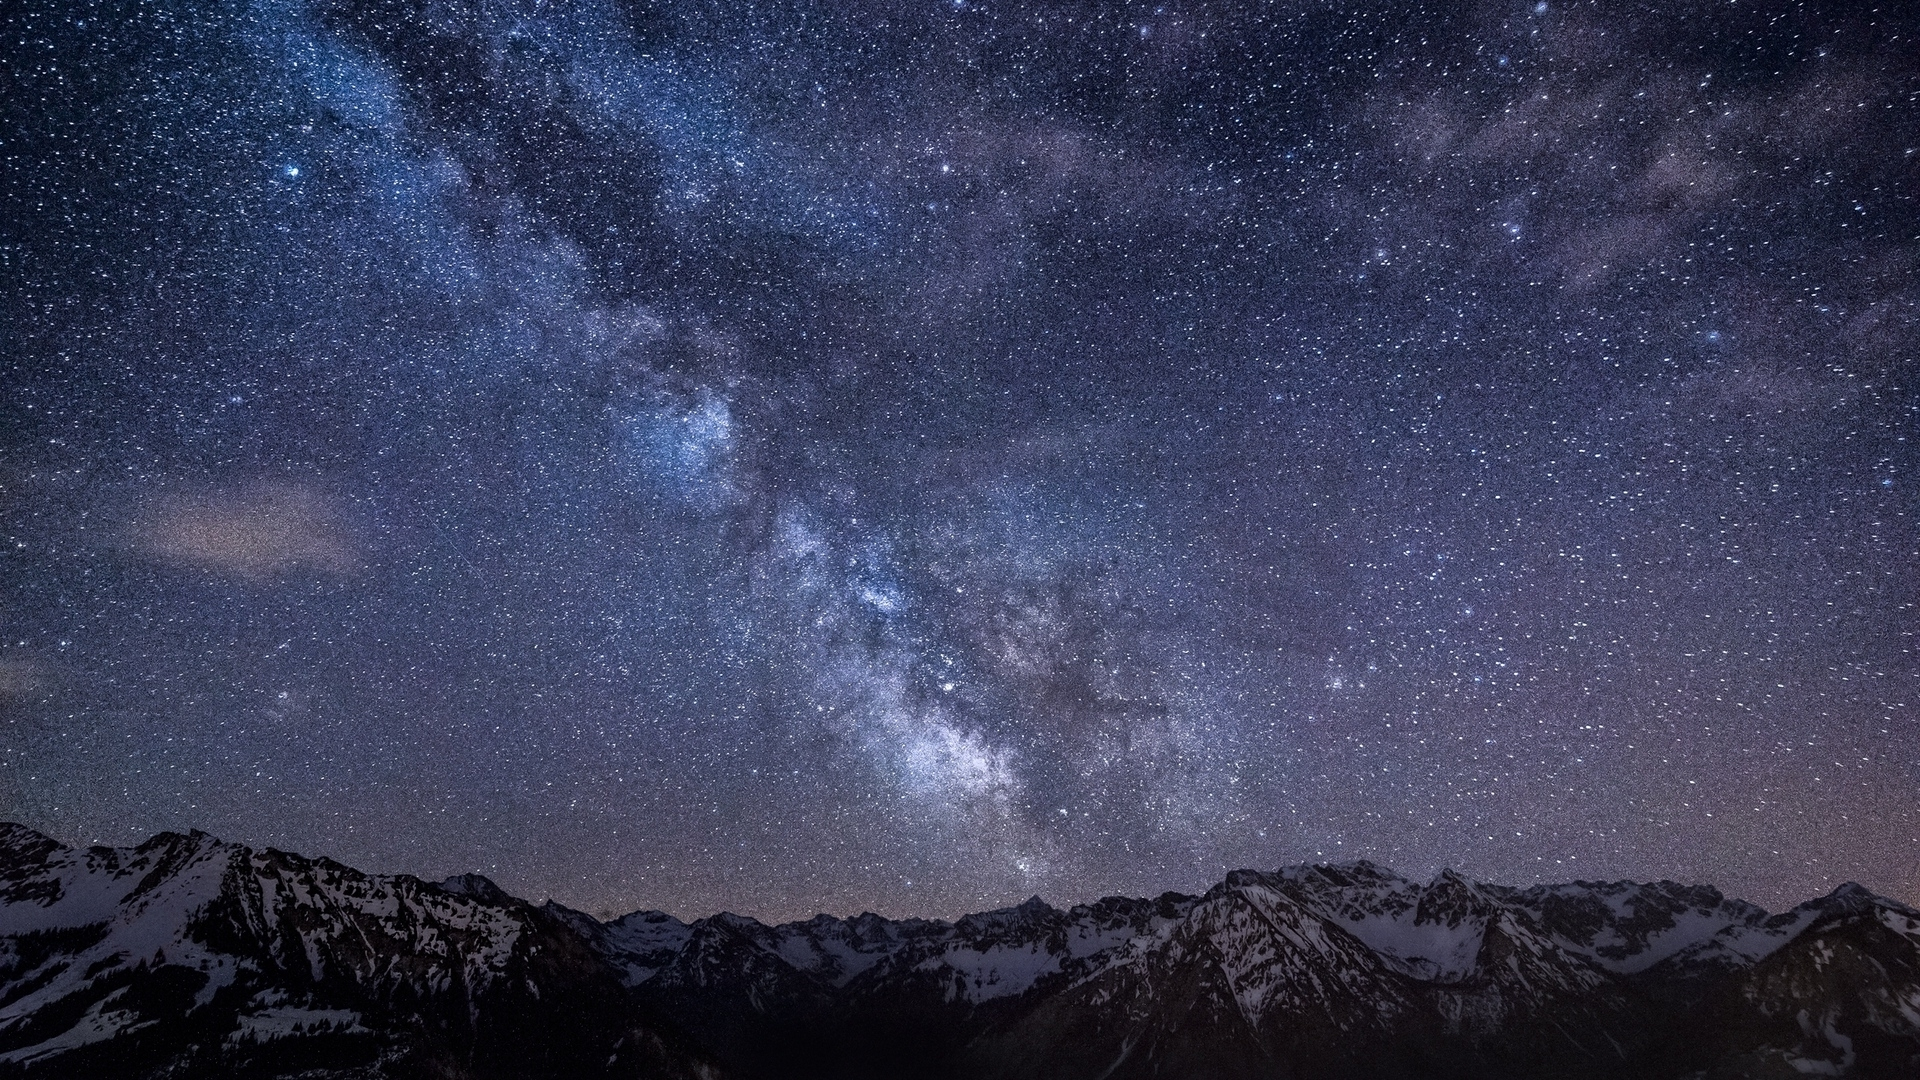 download wallpaper 1920x1080 milky way, stars, mountains, night